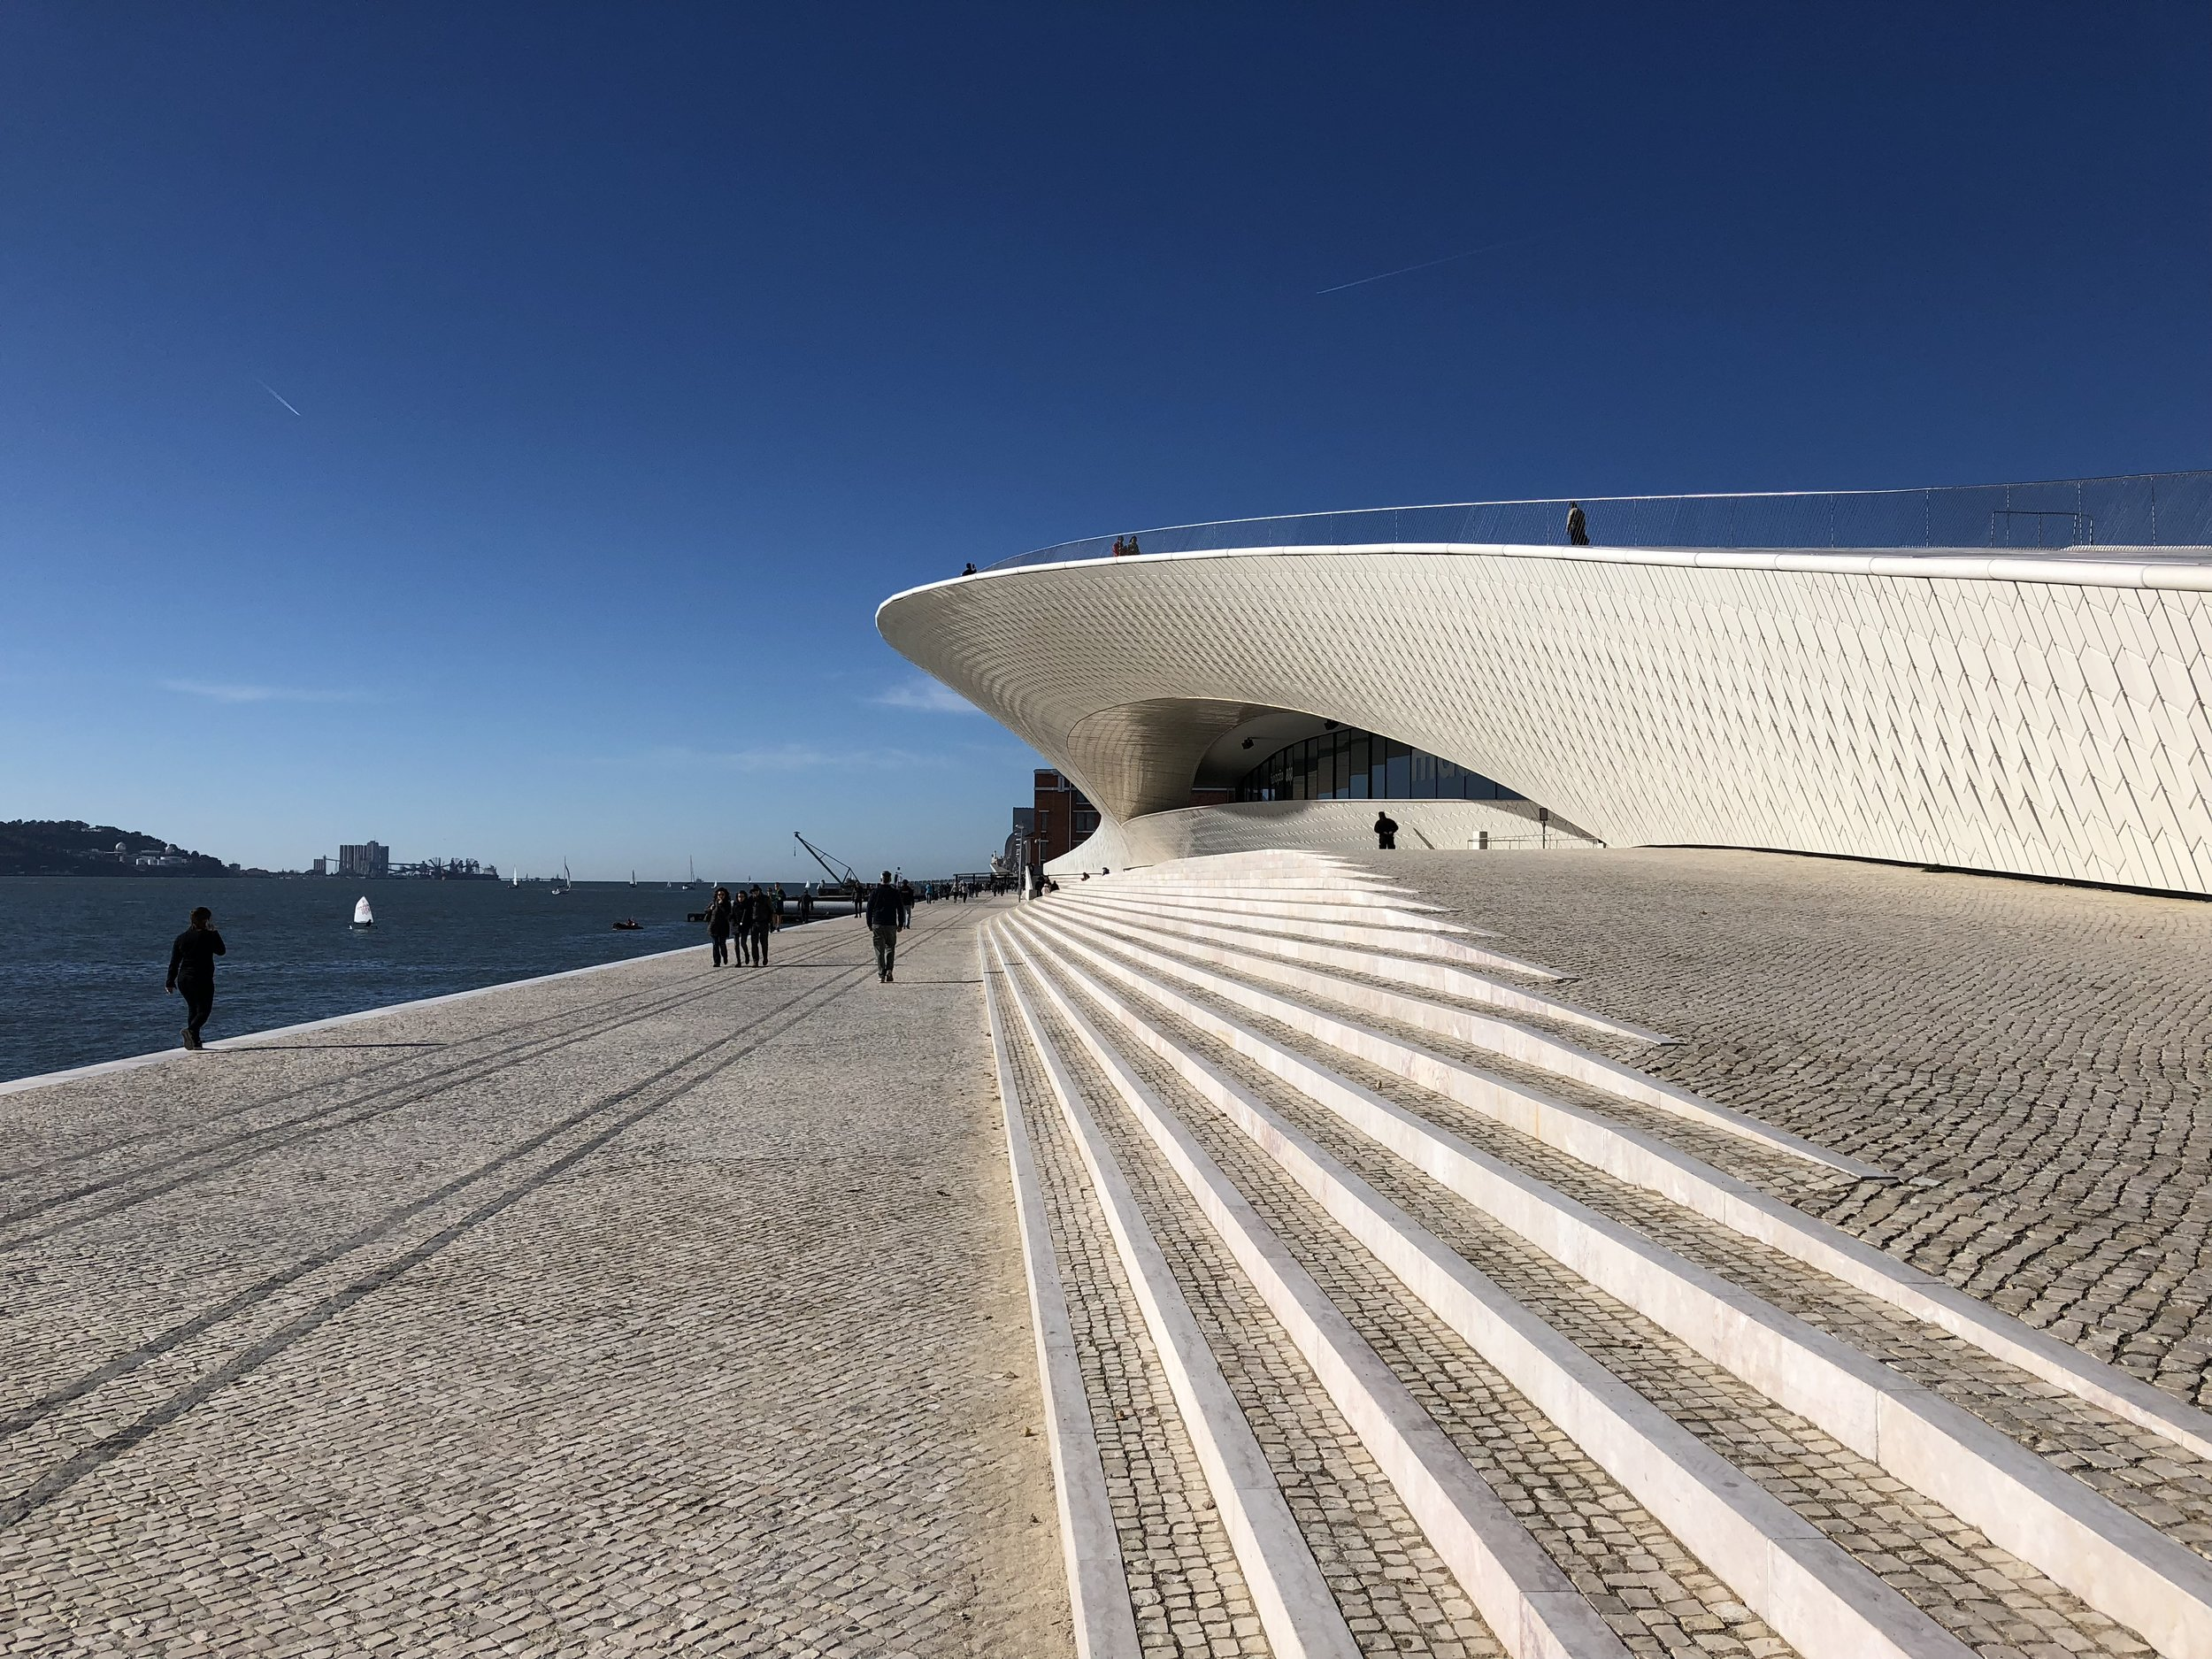 Stop by the new MAAT museum, also on the way to Belem!